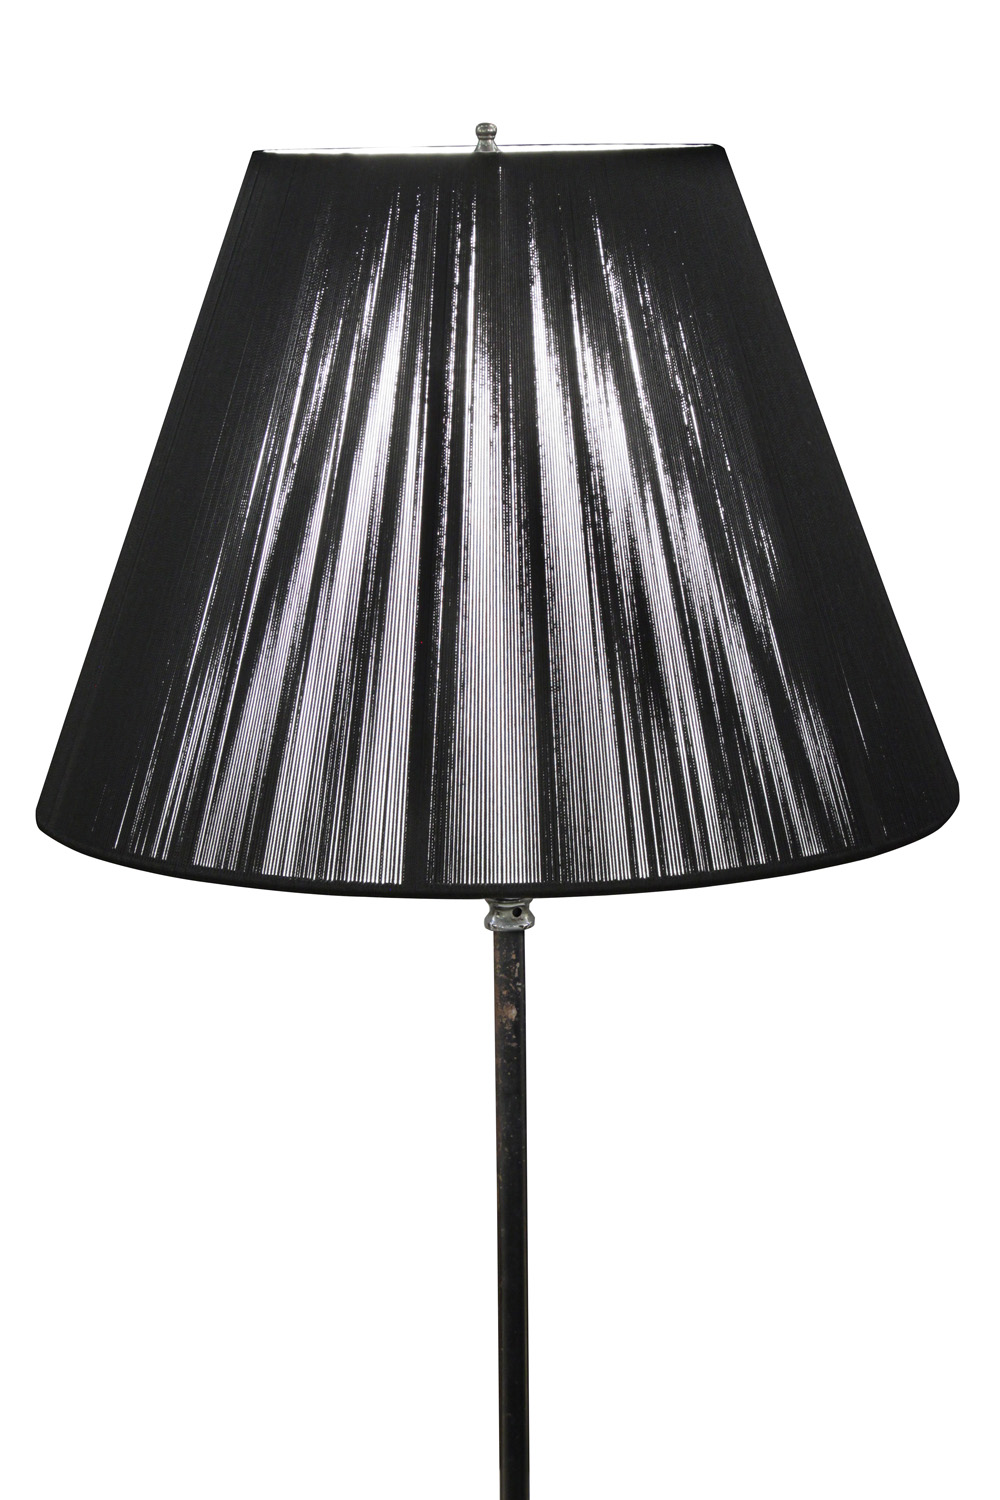 French 55 3 leg blk nickel accnts floorlamp160 detail1 hires.jpg